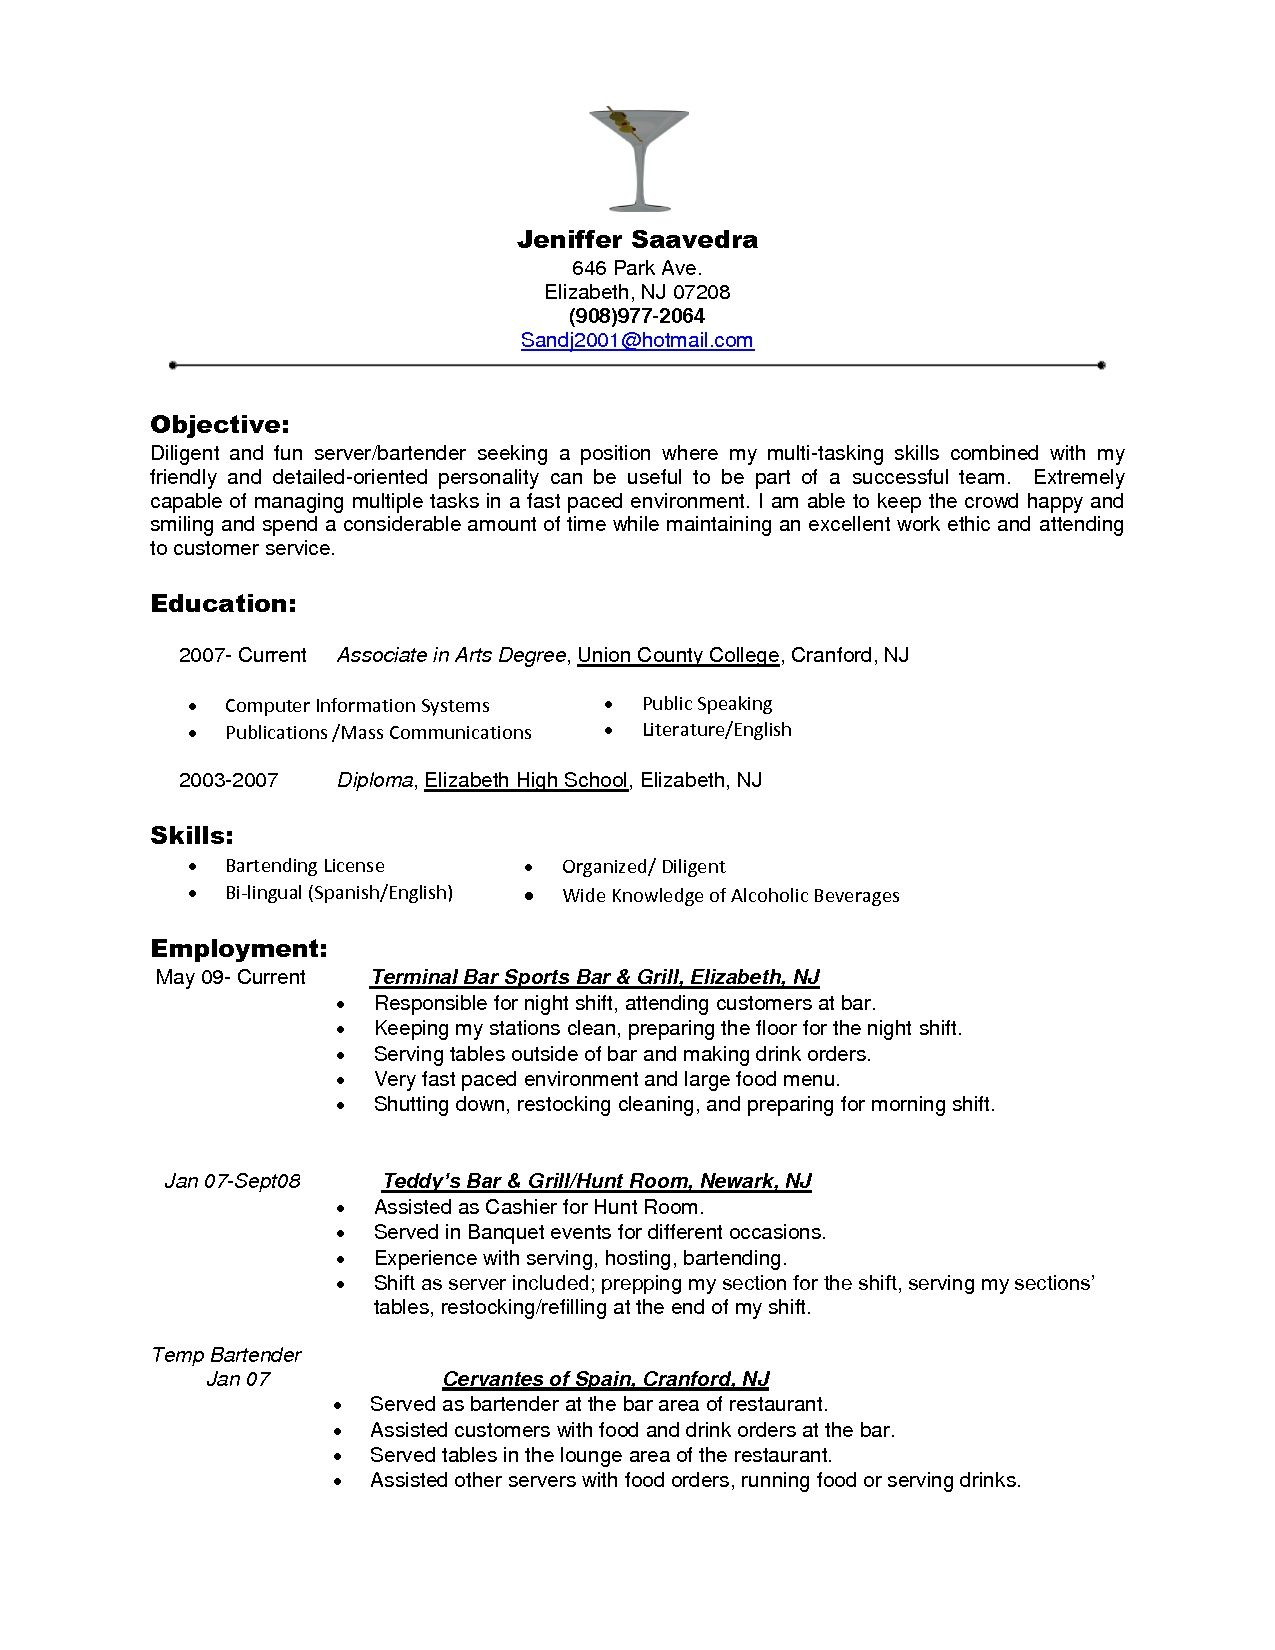 A Good Objective For A Resume Bartender Objectives Resume  Bartender Objectives Resume Will